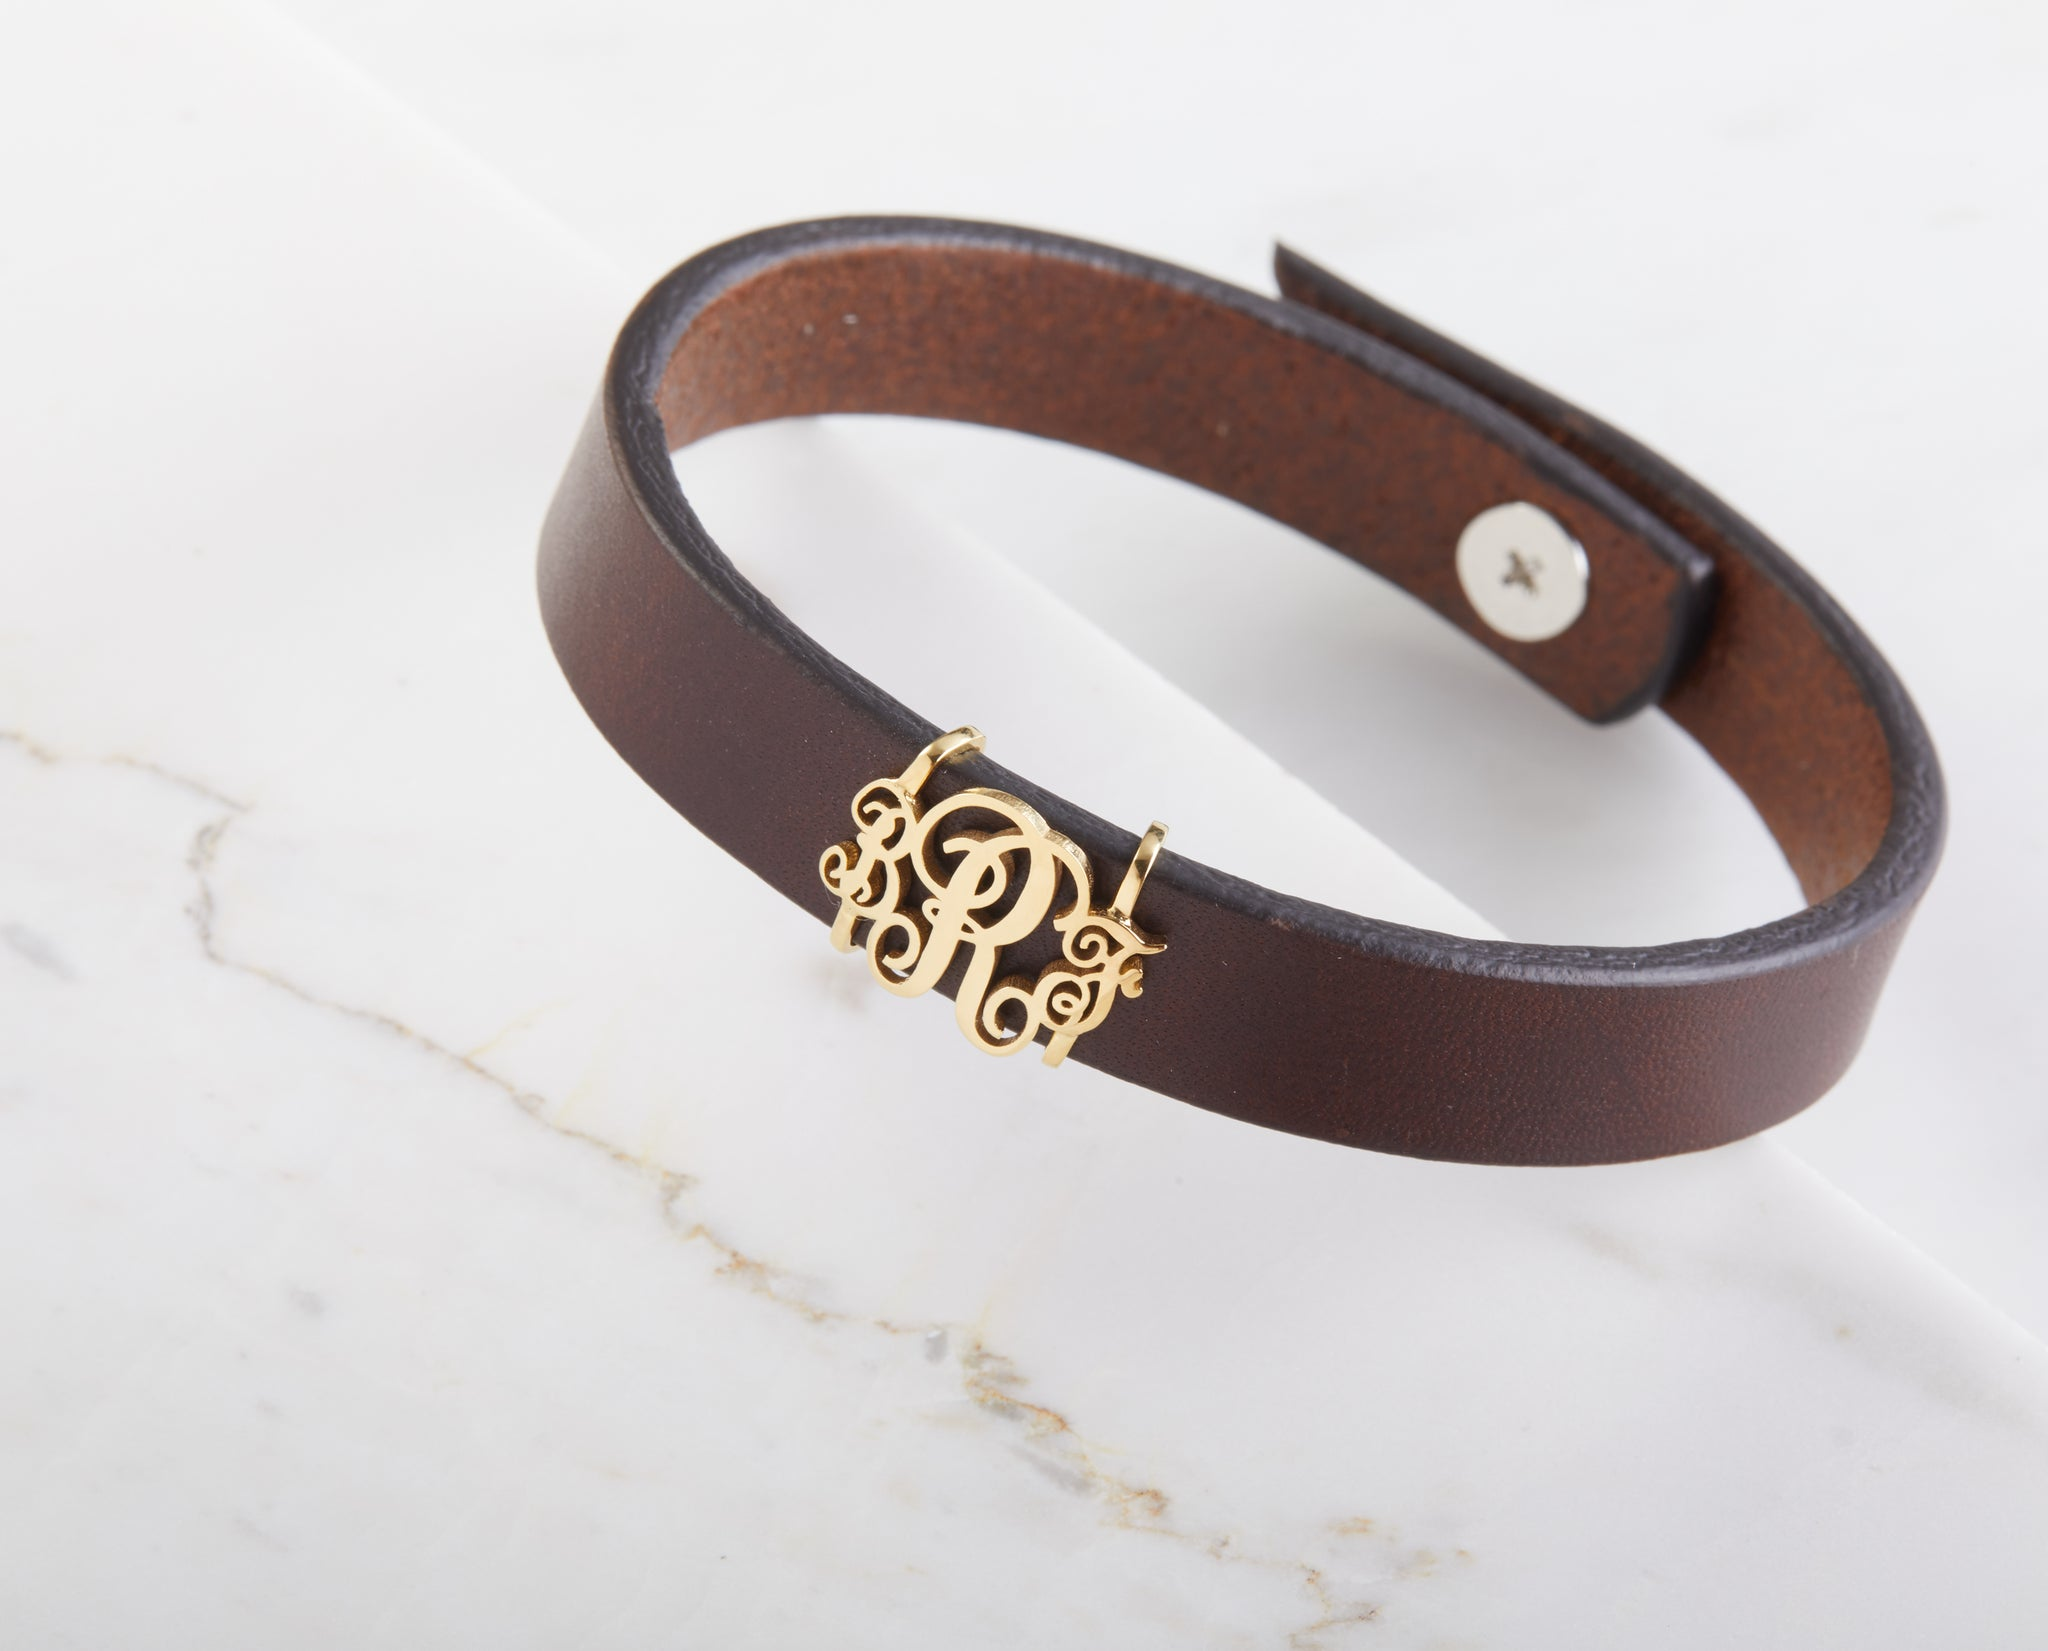 Cursive Monogram Leather Bracelet